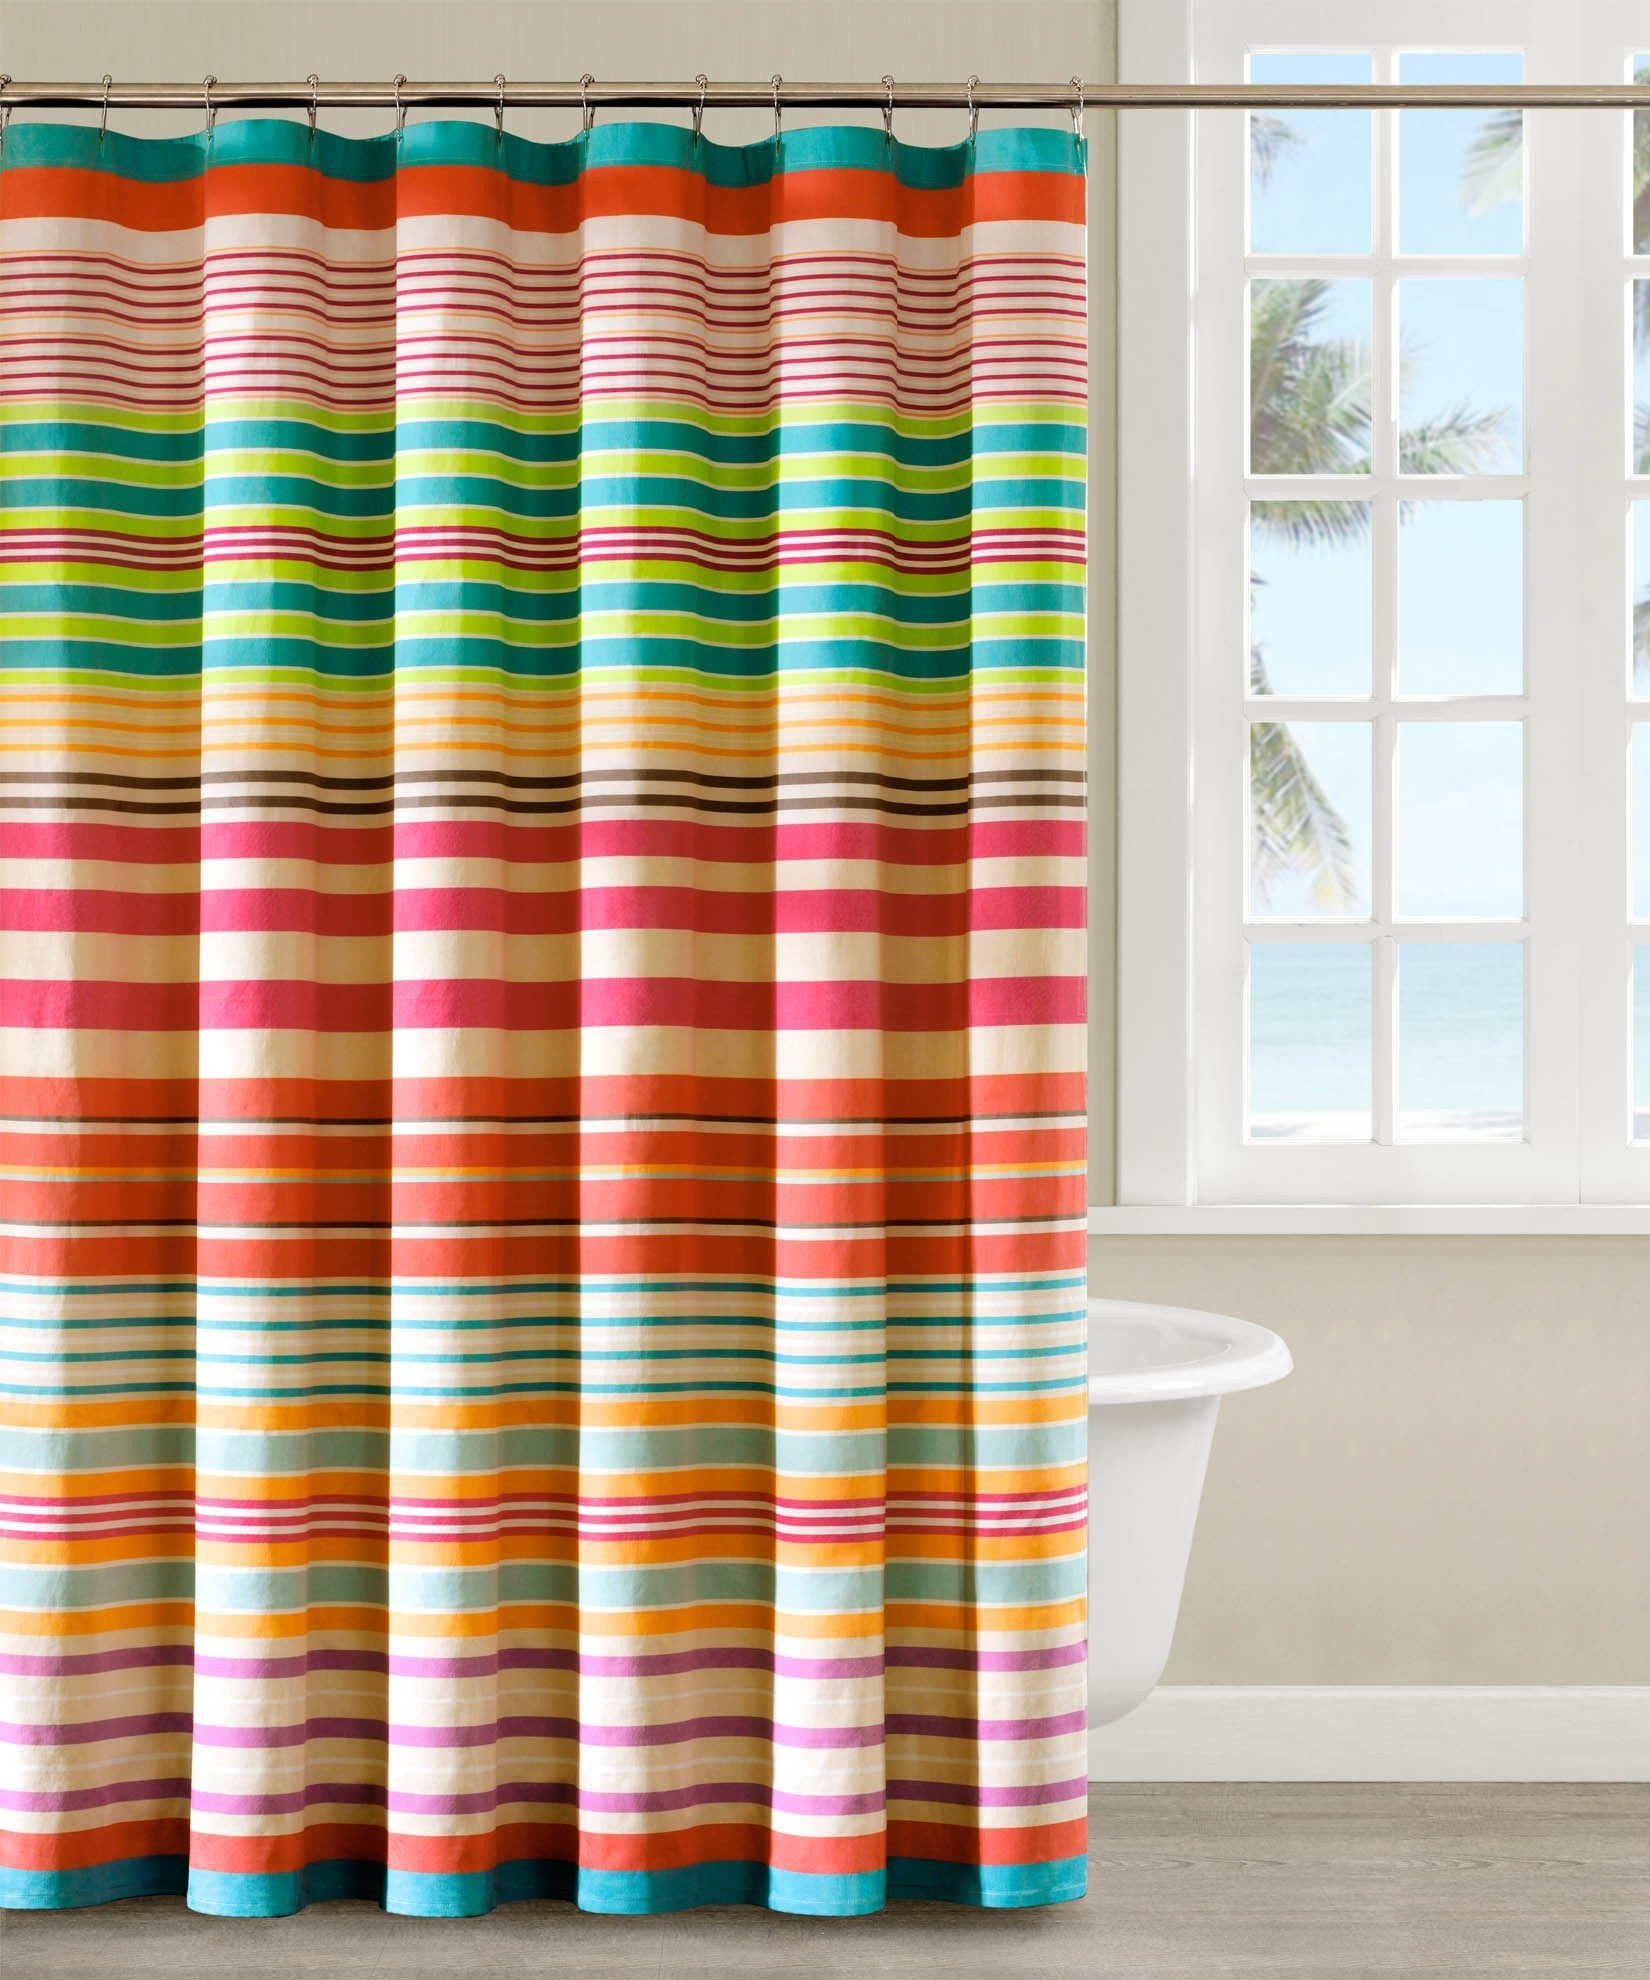 Striped Shower Curtain Multicolor Regarding Multi Coloured Striped Curtains (Image 13 of 15)